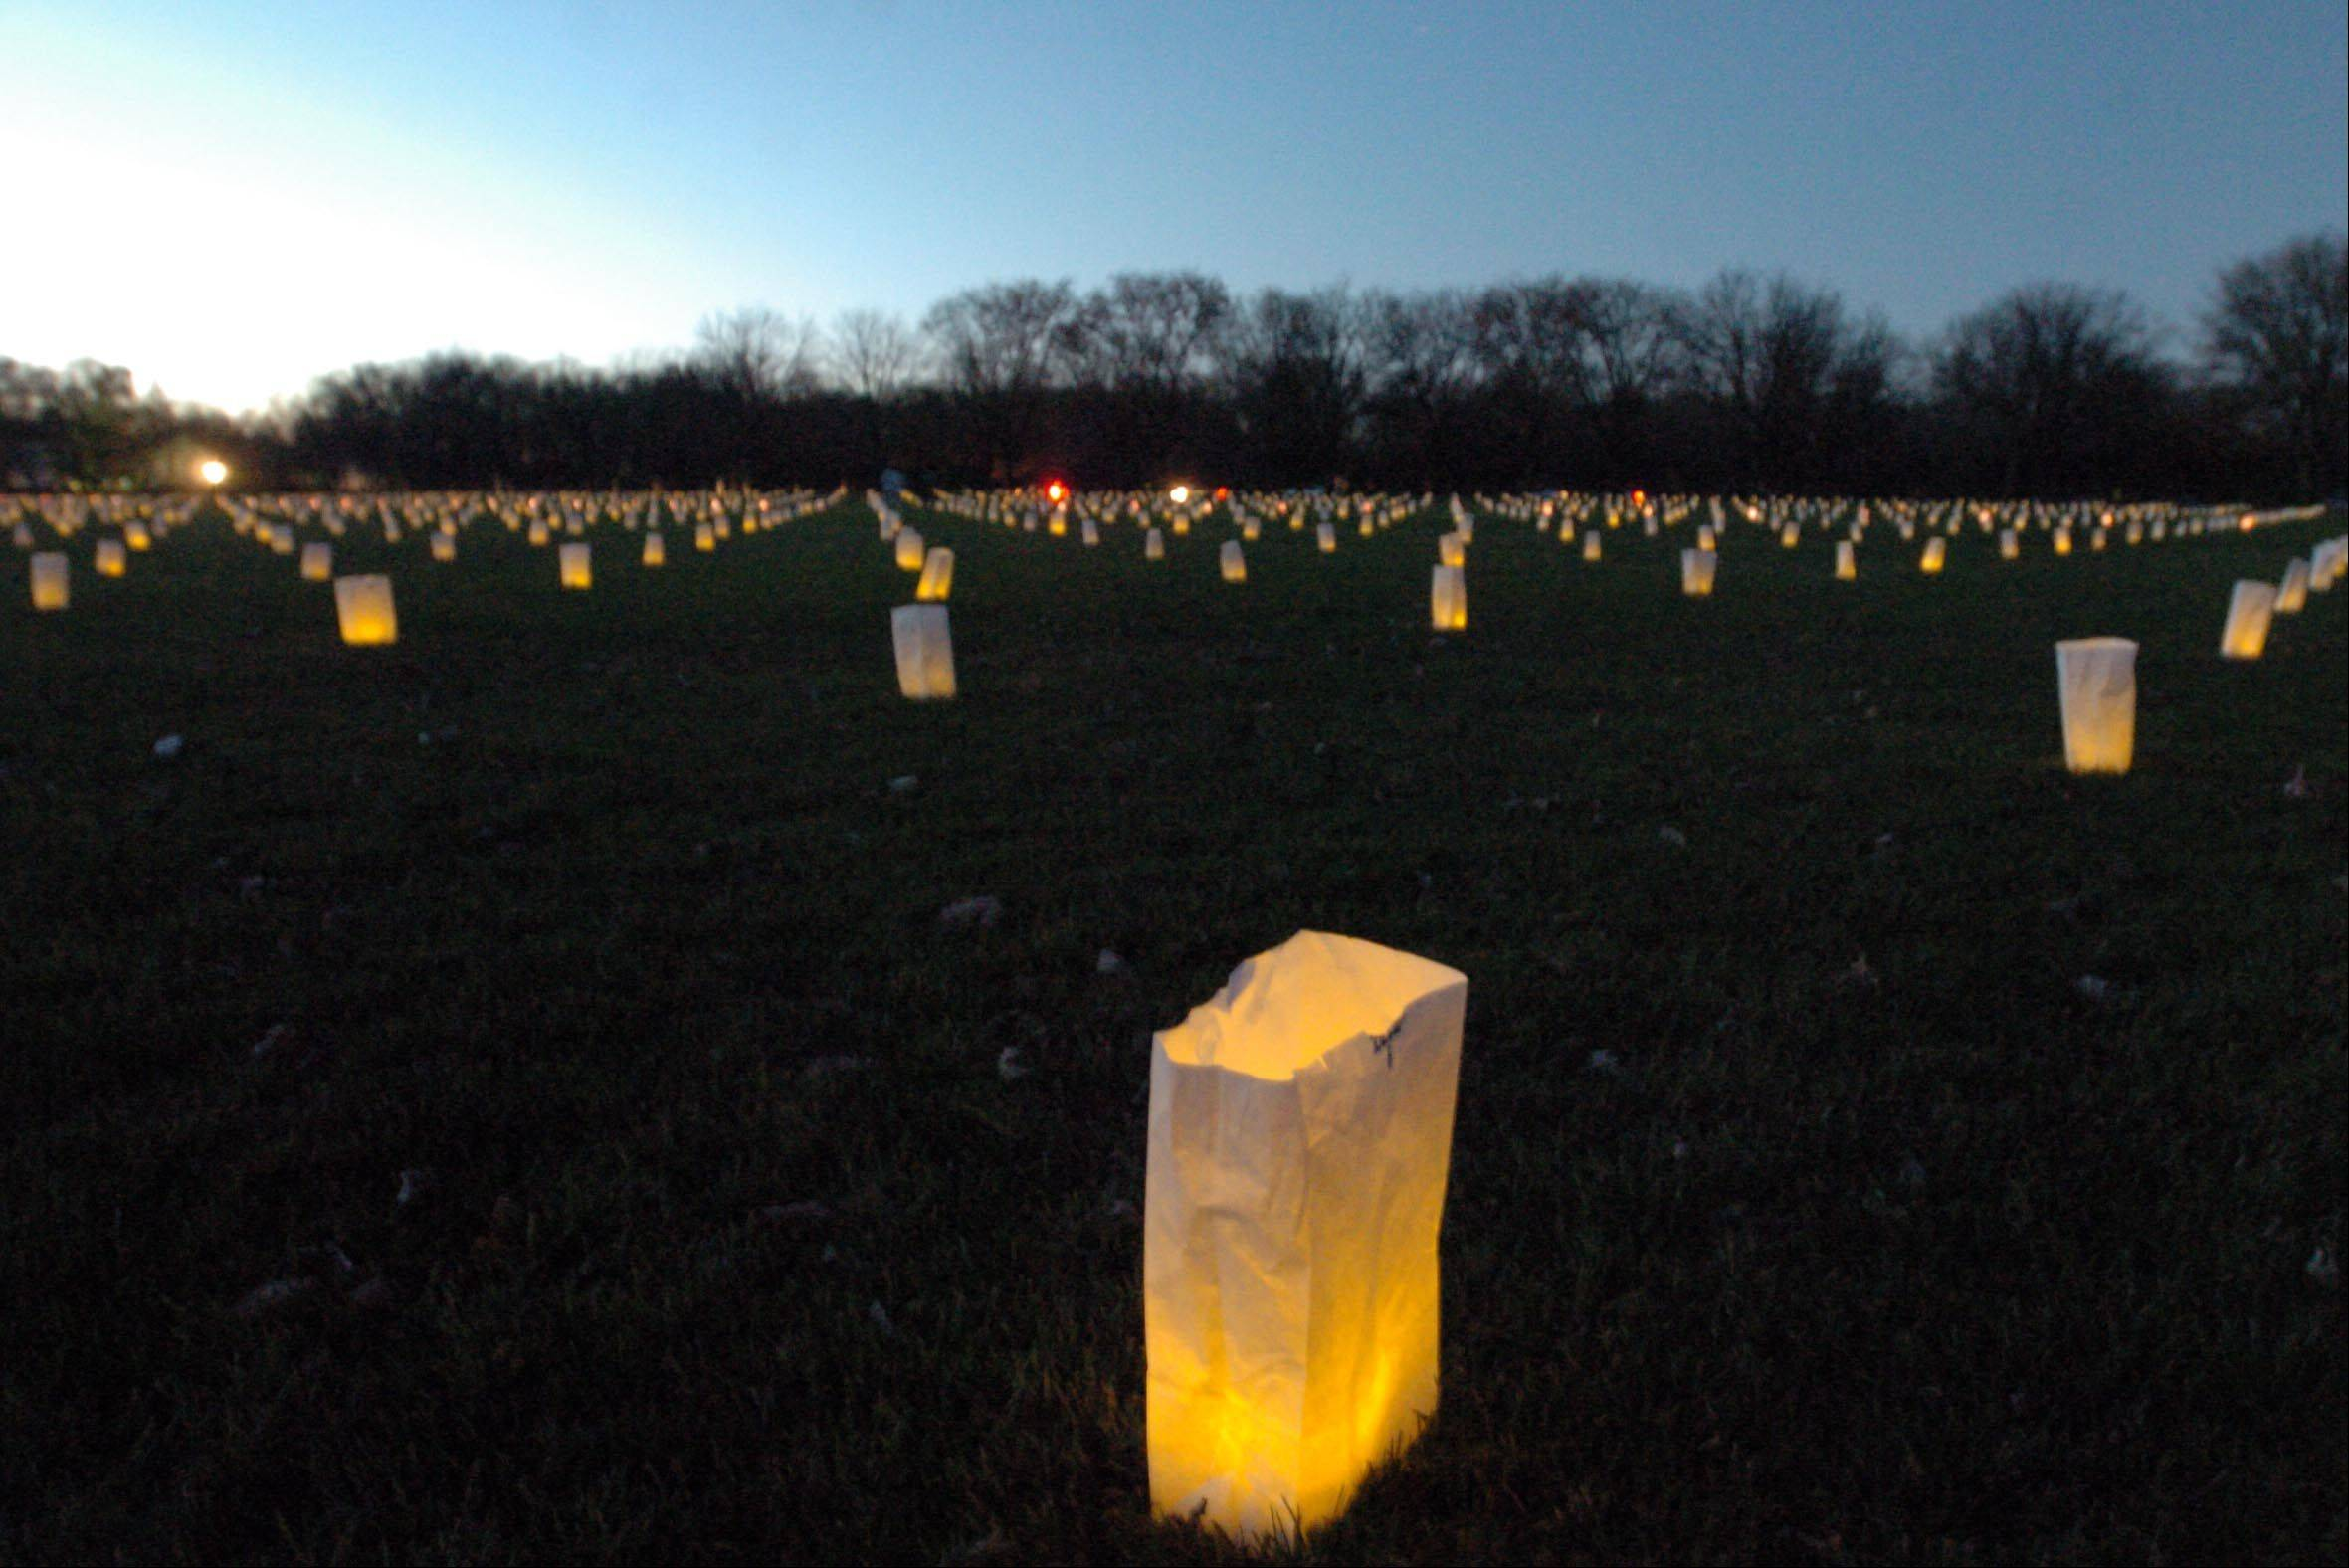 PAUL MICHNA/PMICHNA@DAILYHERALD.COM About 2,200 luminaries will be lit up to honor U.S. veterans at Cantigny Park in Wheaton.